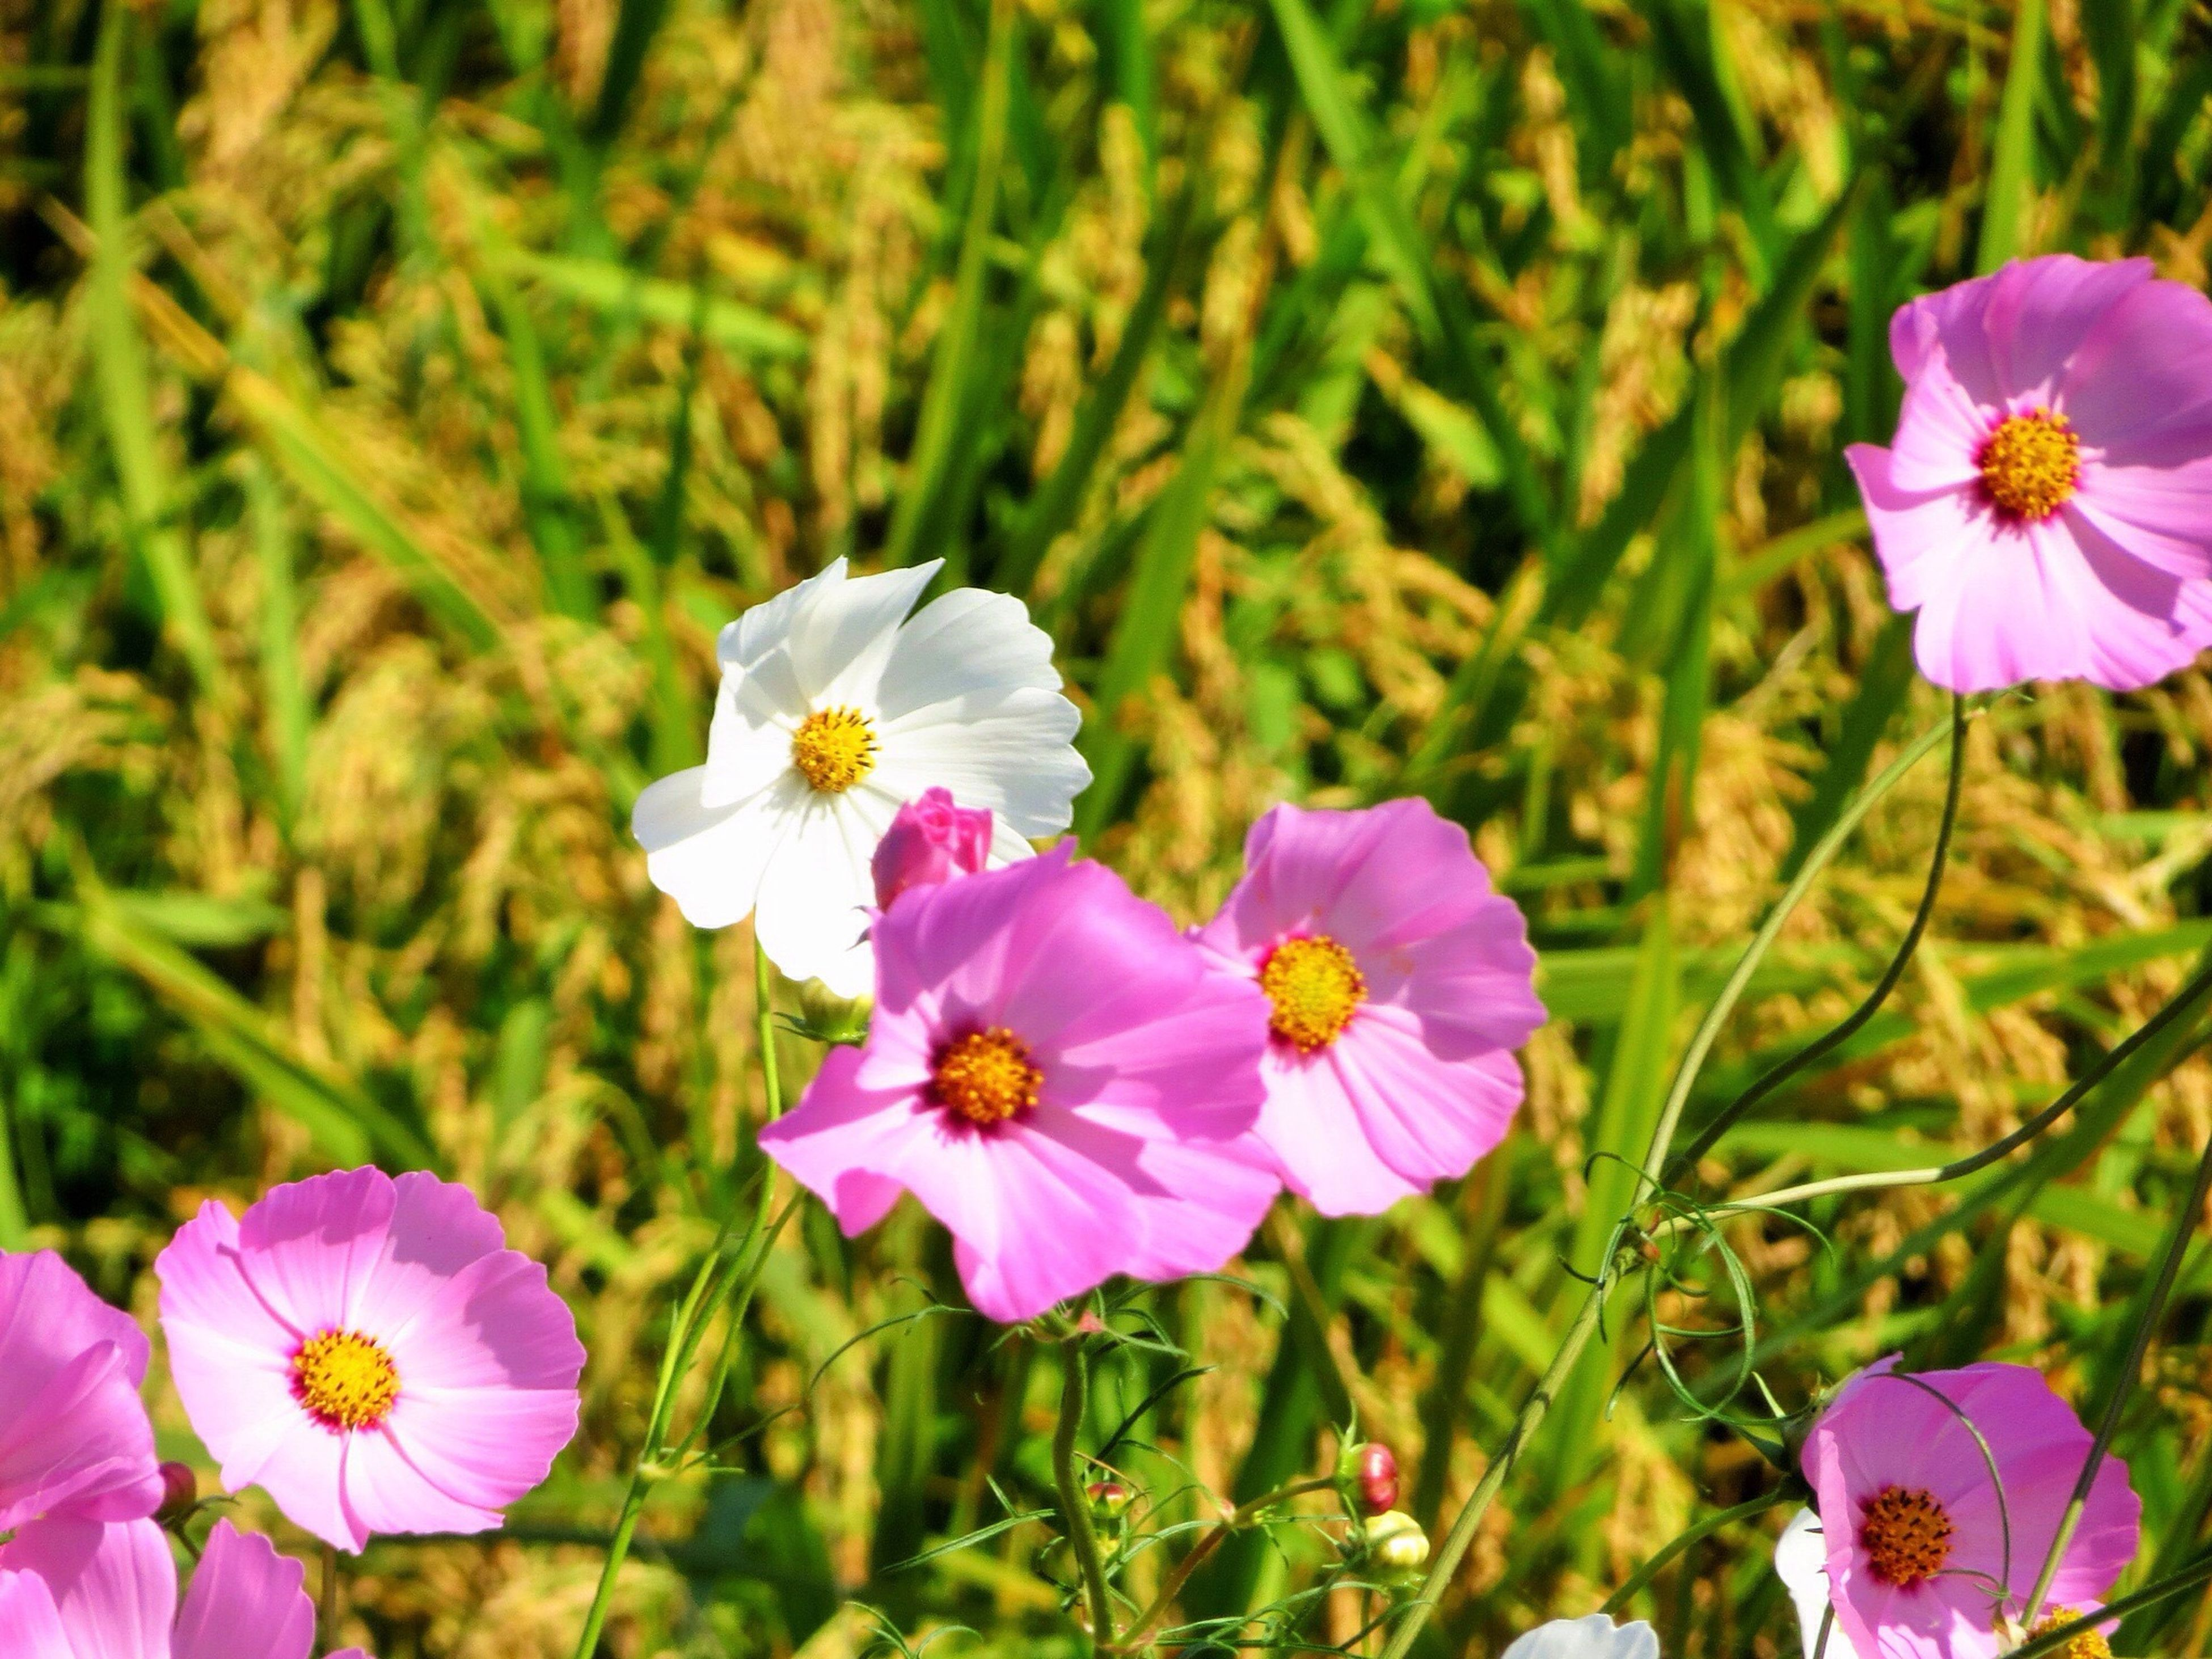 flower, freshness, petal, fragility, flower head, growth, beauty in nature, blooming, nature, focus on foreground, pollen, plant, close-up, field, pink color, in bloom, purple, stamen, blossom, stem